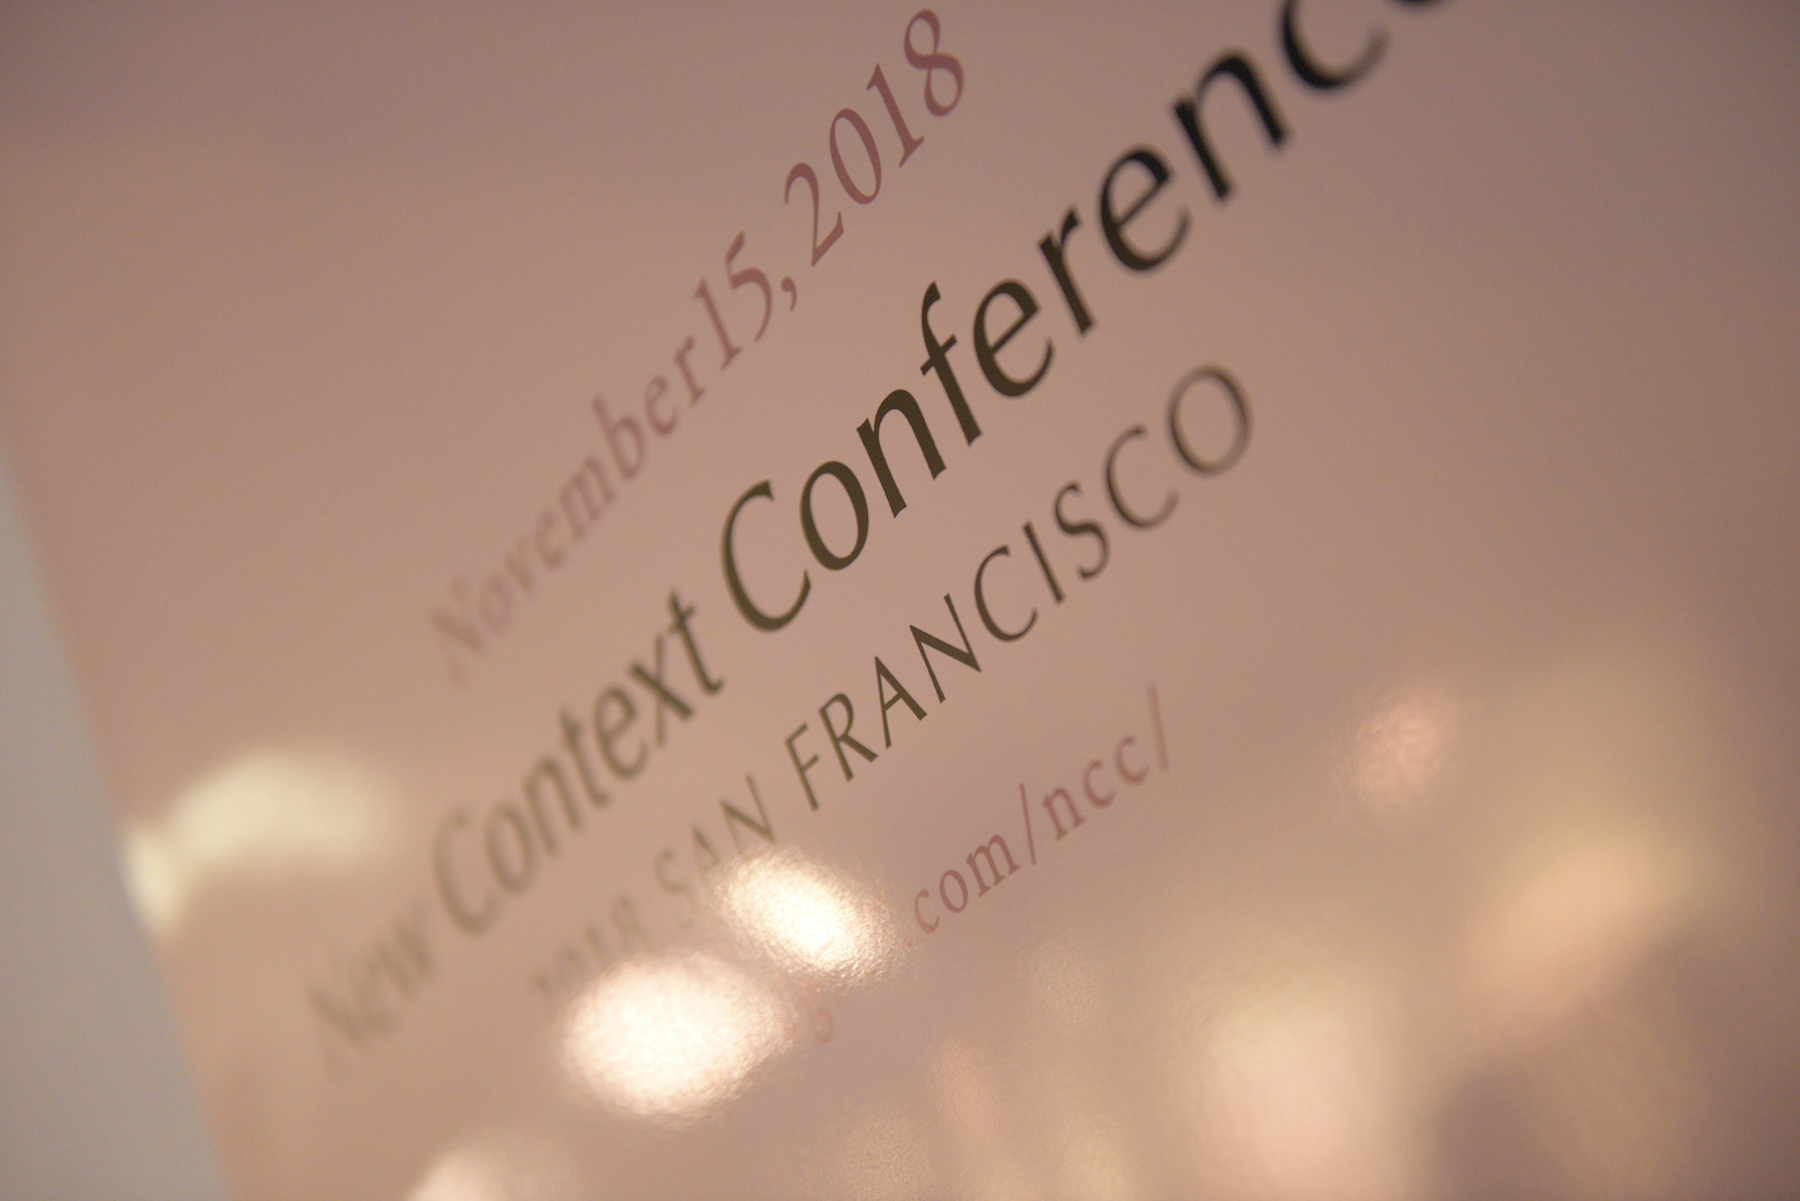 qTHE NEW CONTEXT CONFERENCE 2018 SAN FRANCISCO